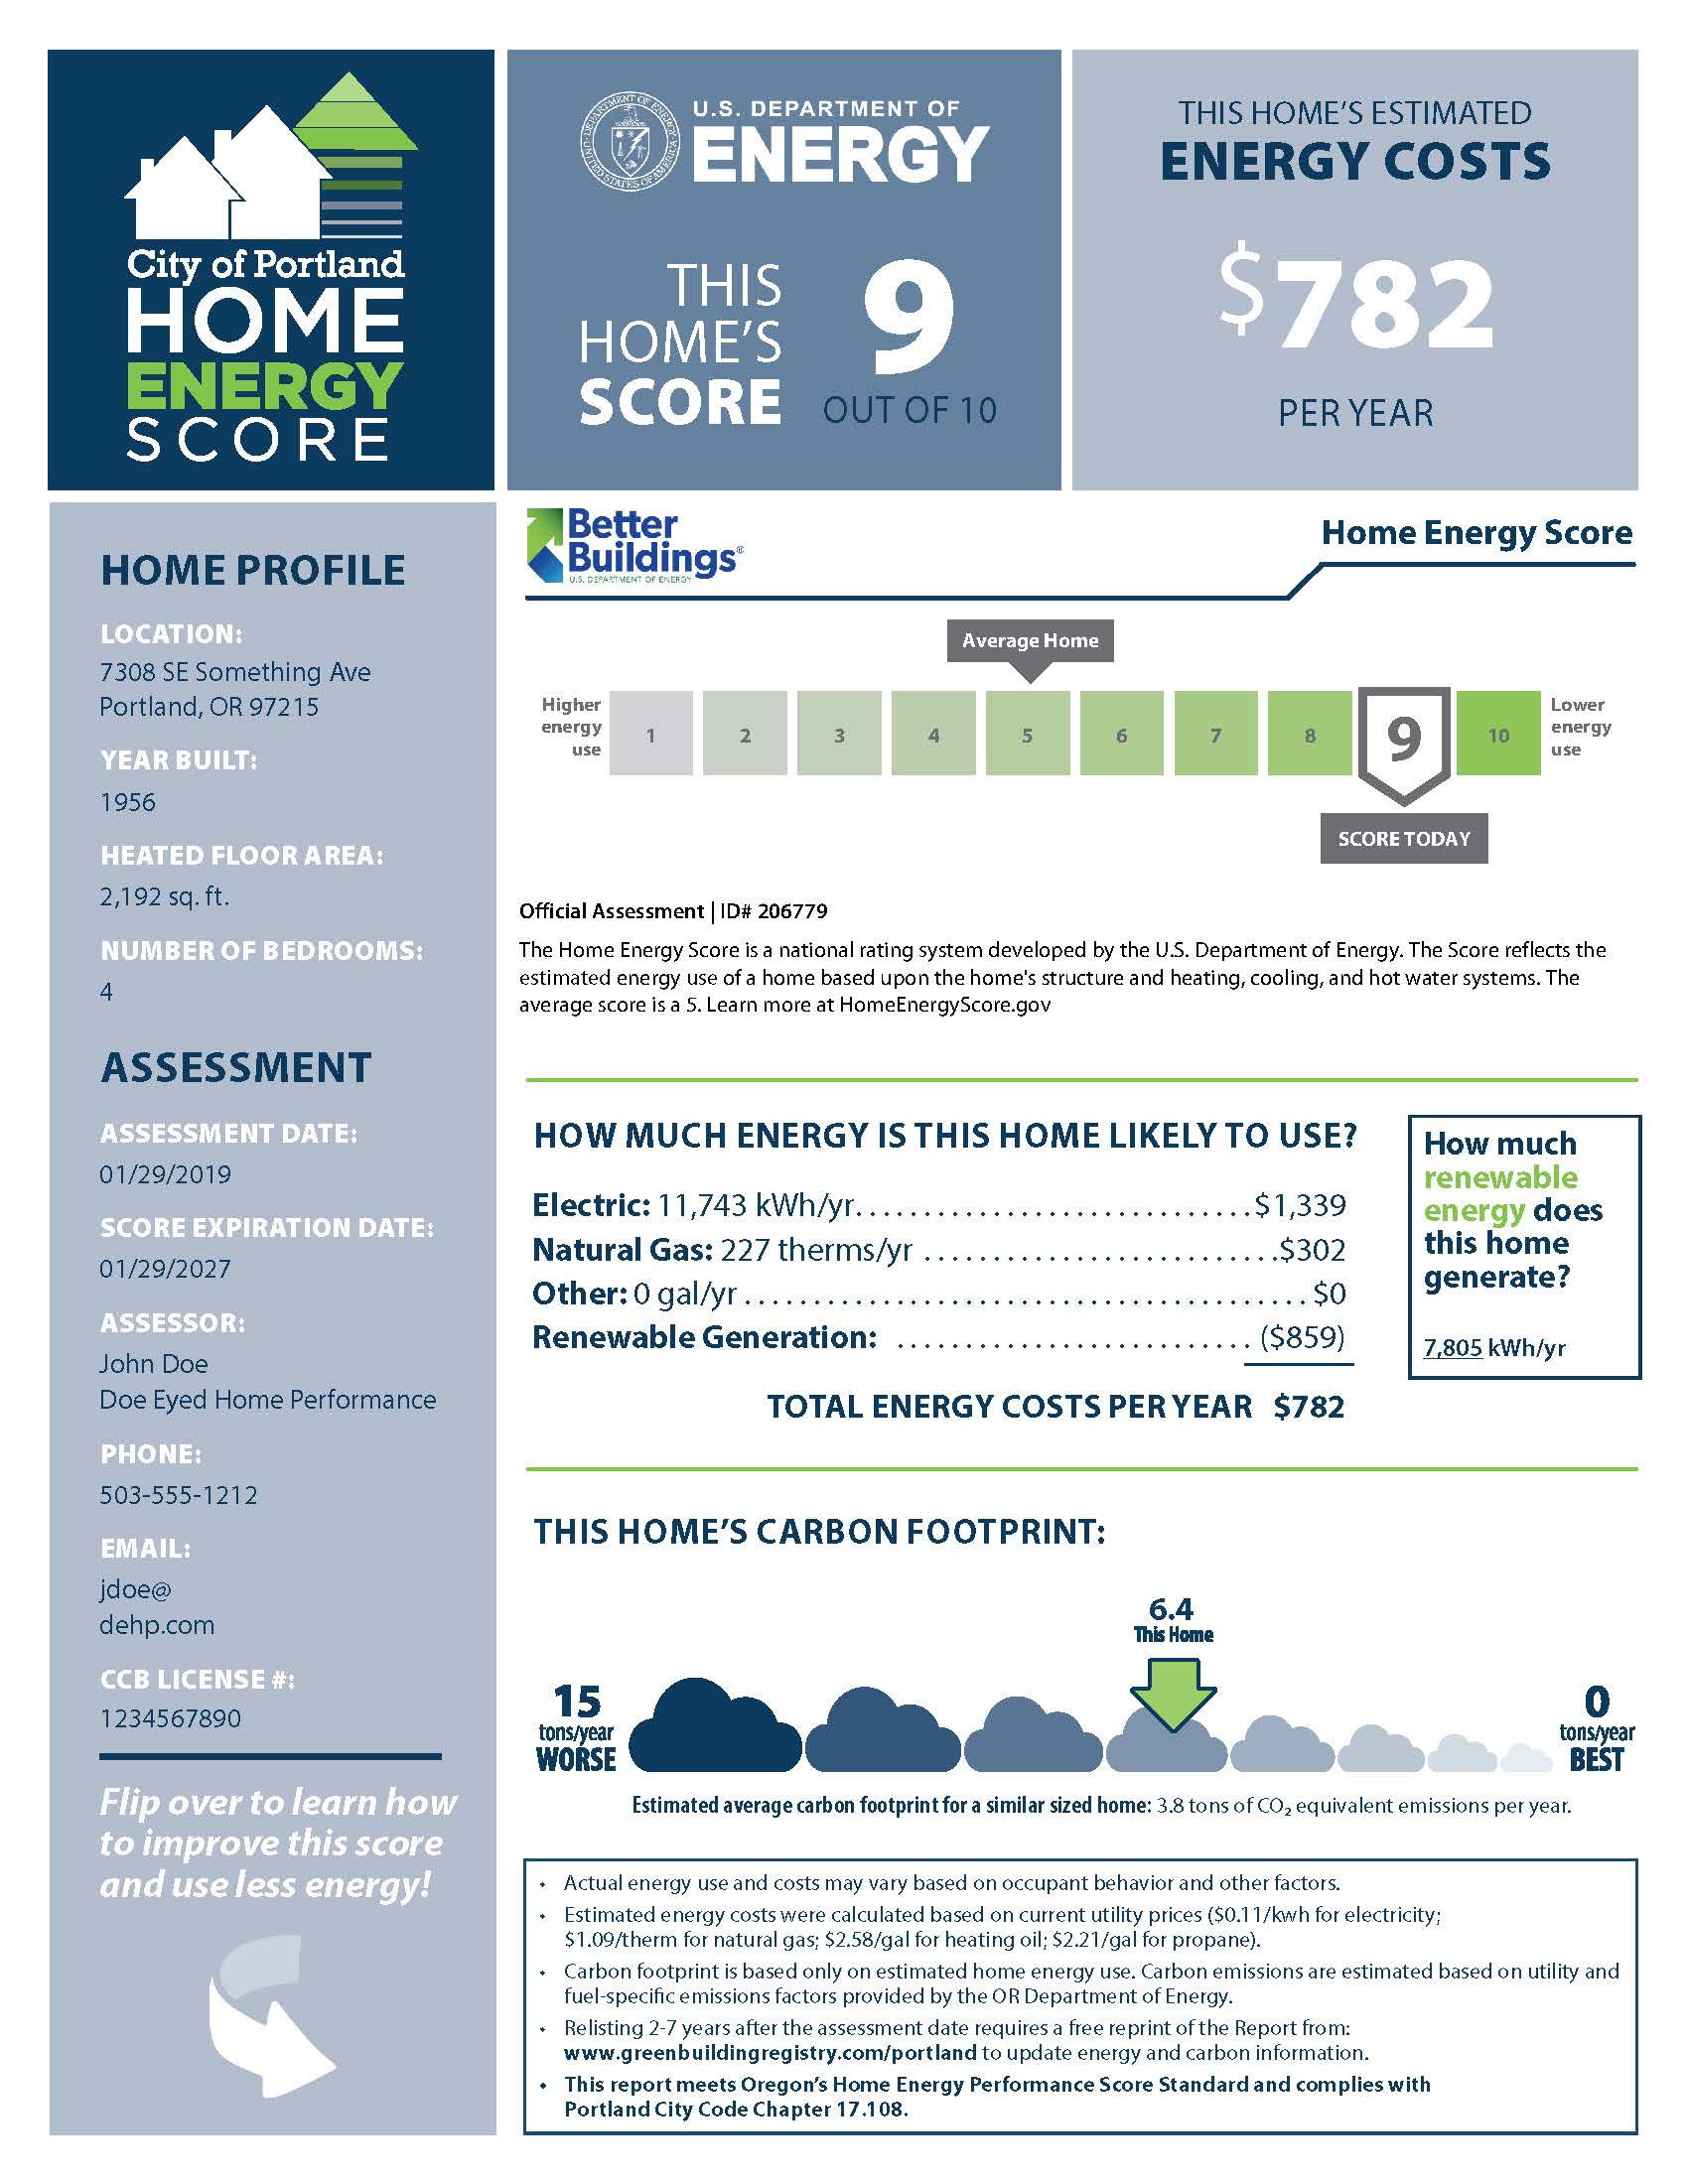 Sample Home Energy Report - Existing Homes_Front.jpg